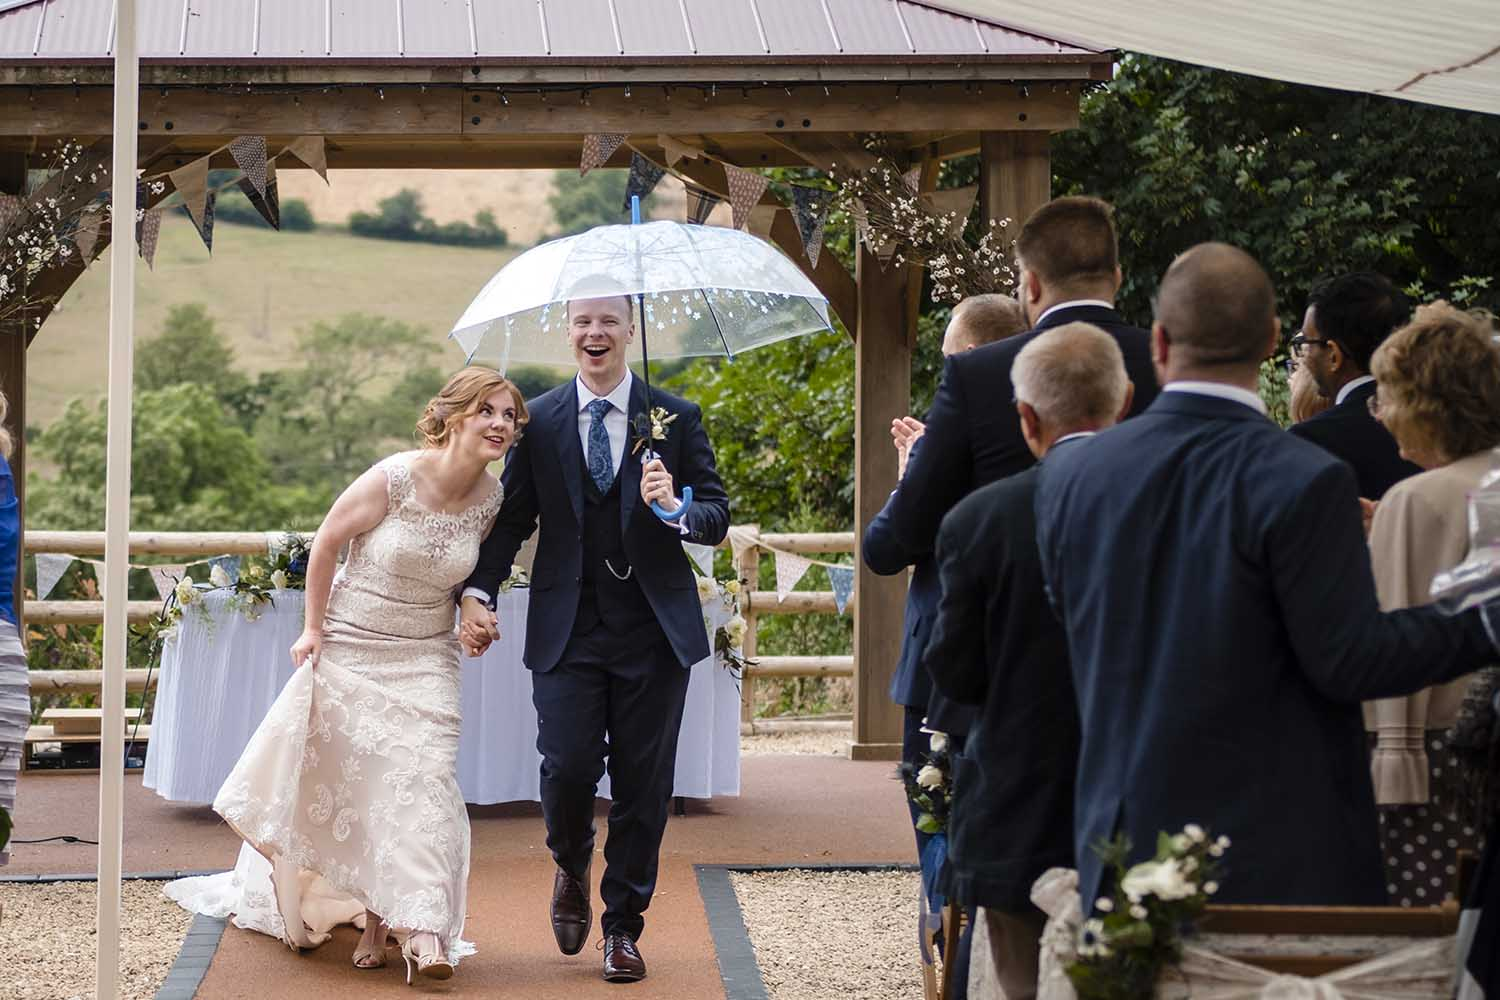 couple with umbrella at outdoor ceremony in the rain